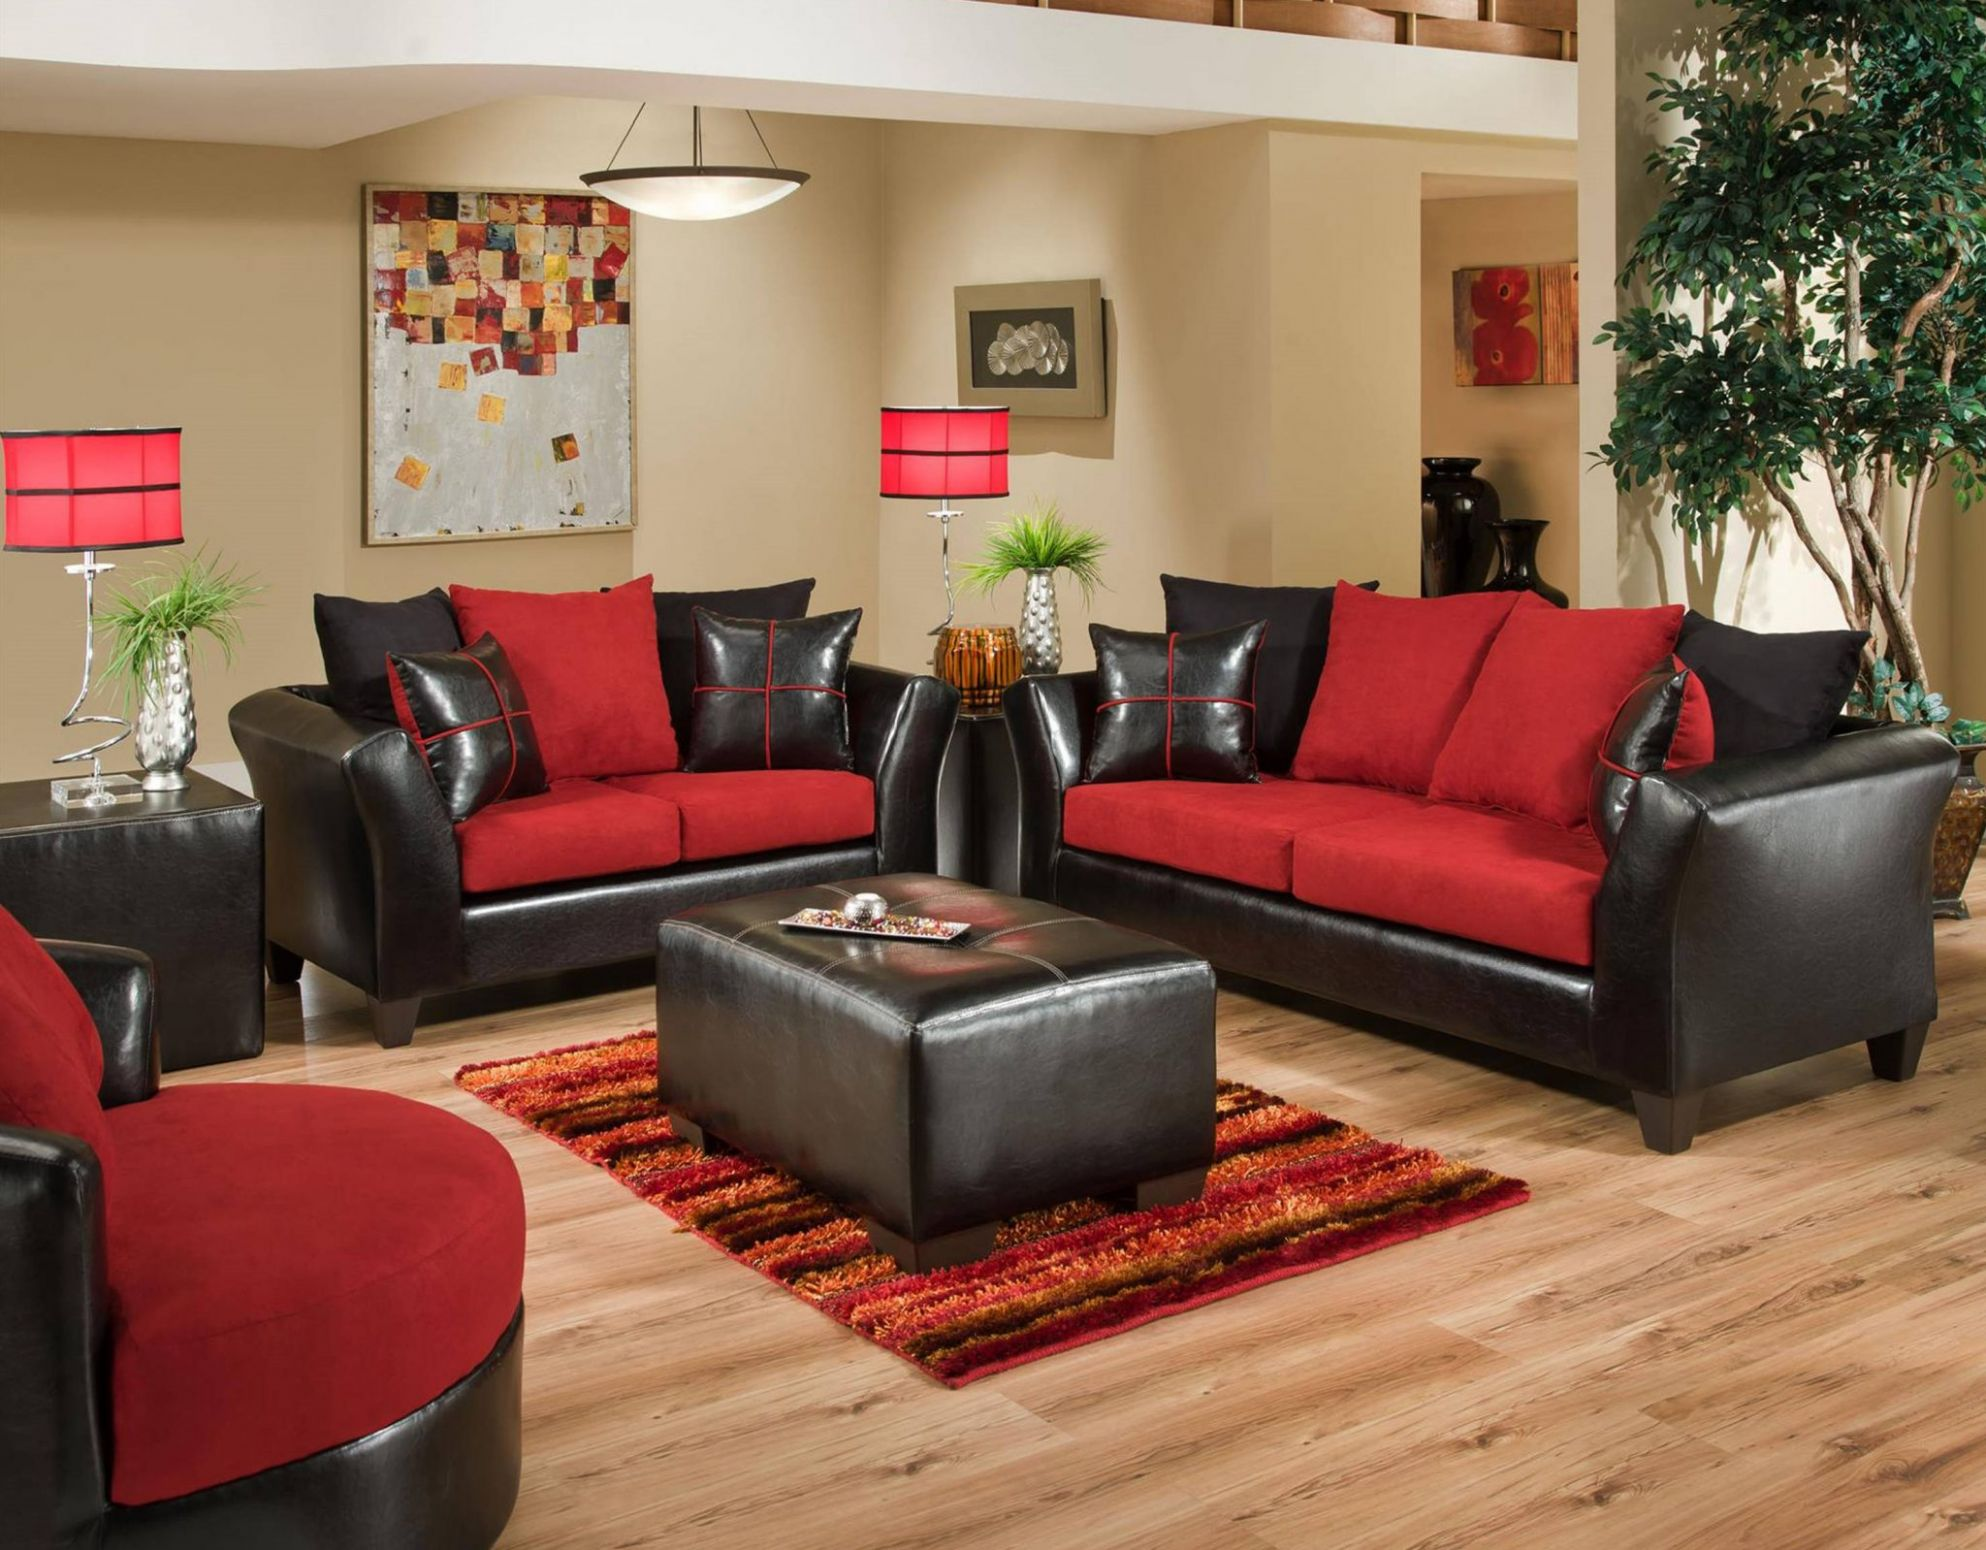 12 Red and Black Living Room Ideas 12 (The Stunning Combo) - living room ideas red black grey